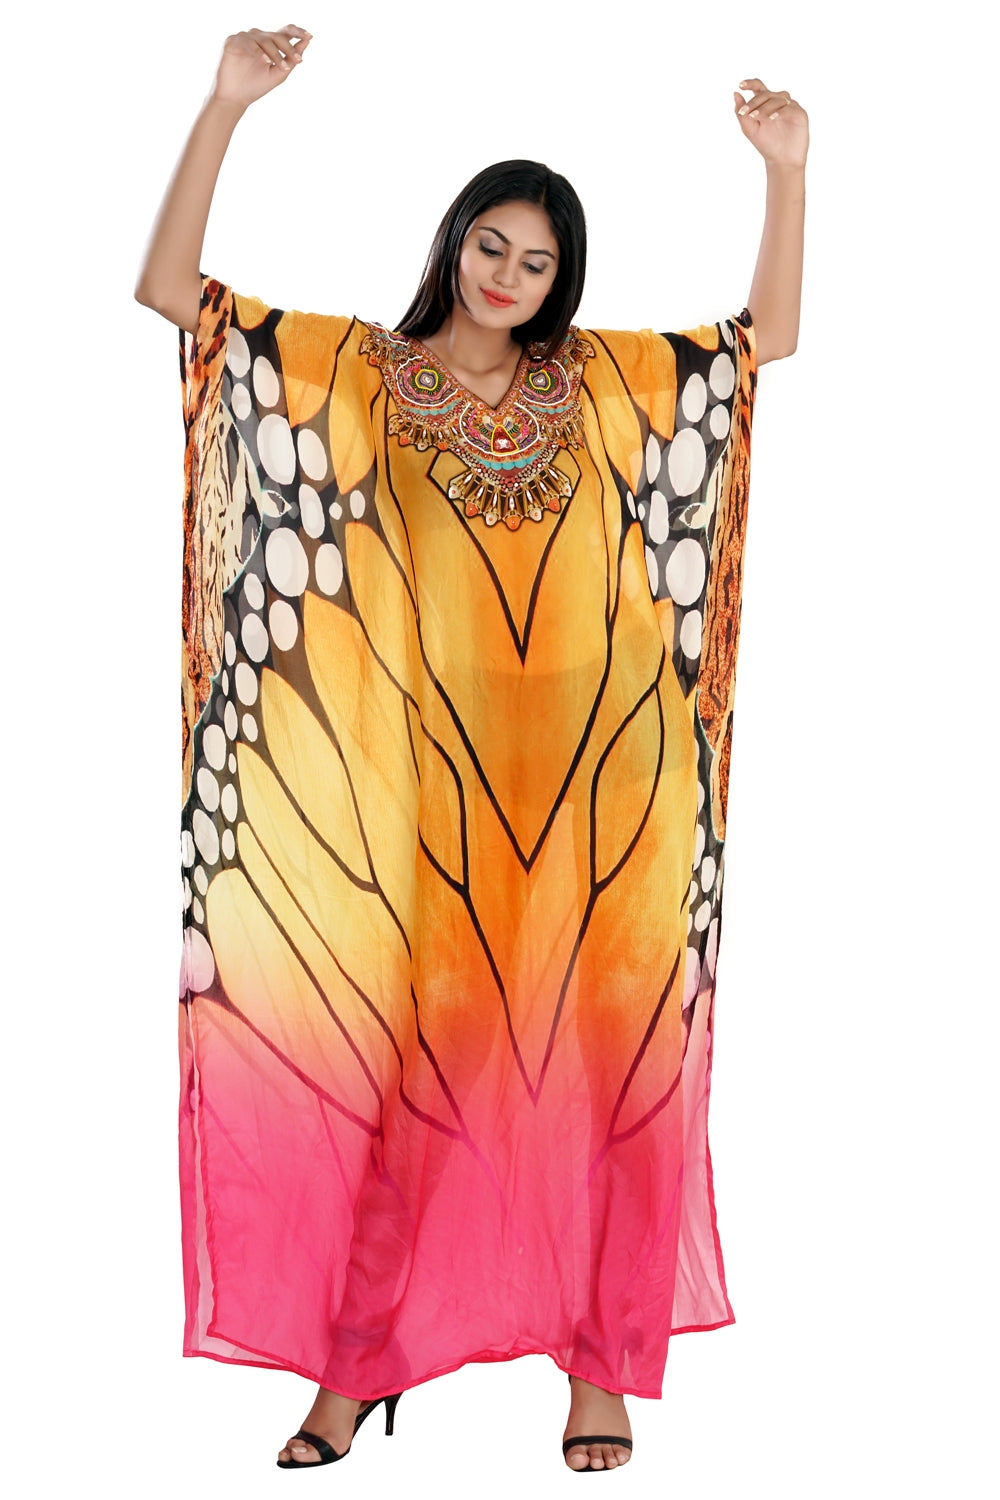 Tiger Print Beach party caftan designer silk kaftan cruise wear kaftan luxury resort wear kaftan - Silk kaftan